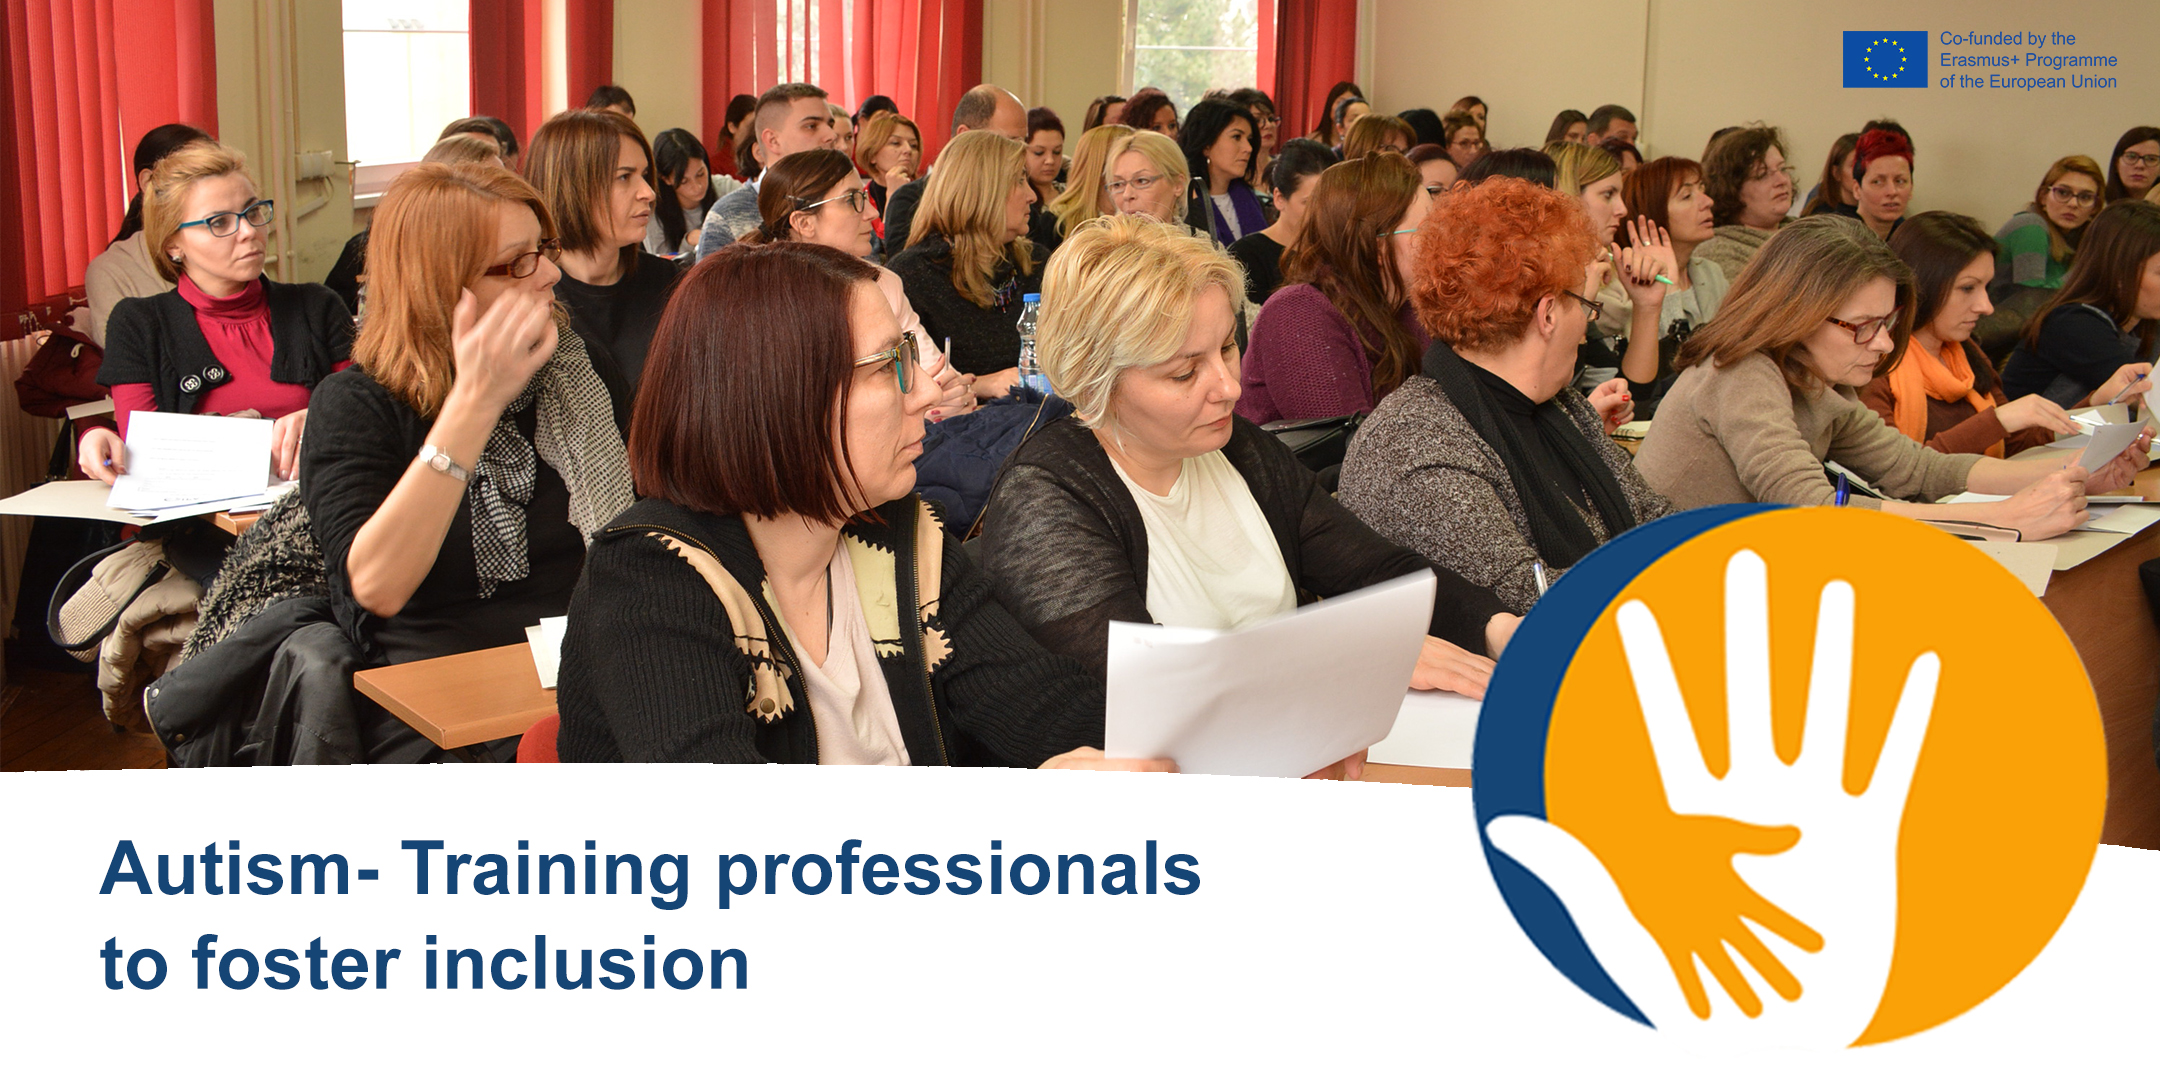 """Register now for our final conference in Brussels """"Autism -Training professionals to foster inclusion"""""""